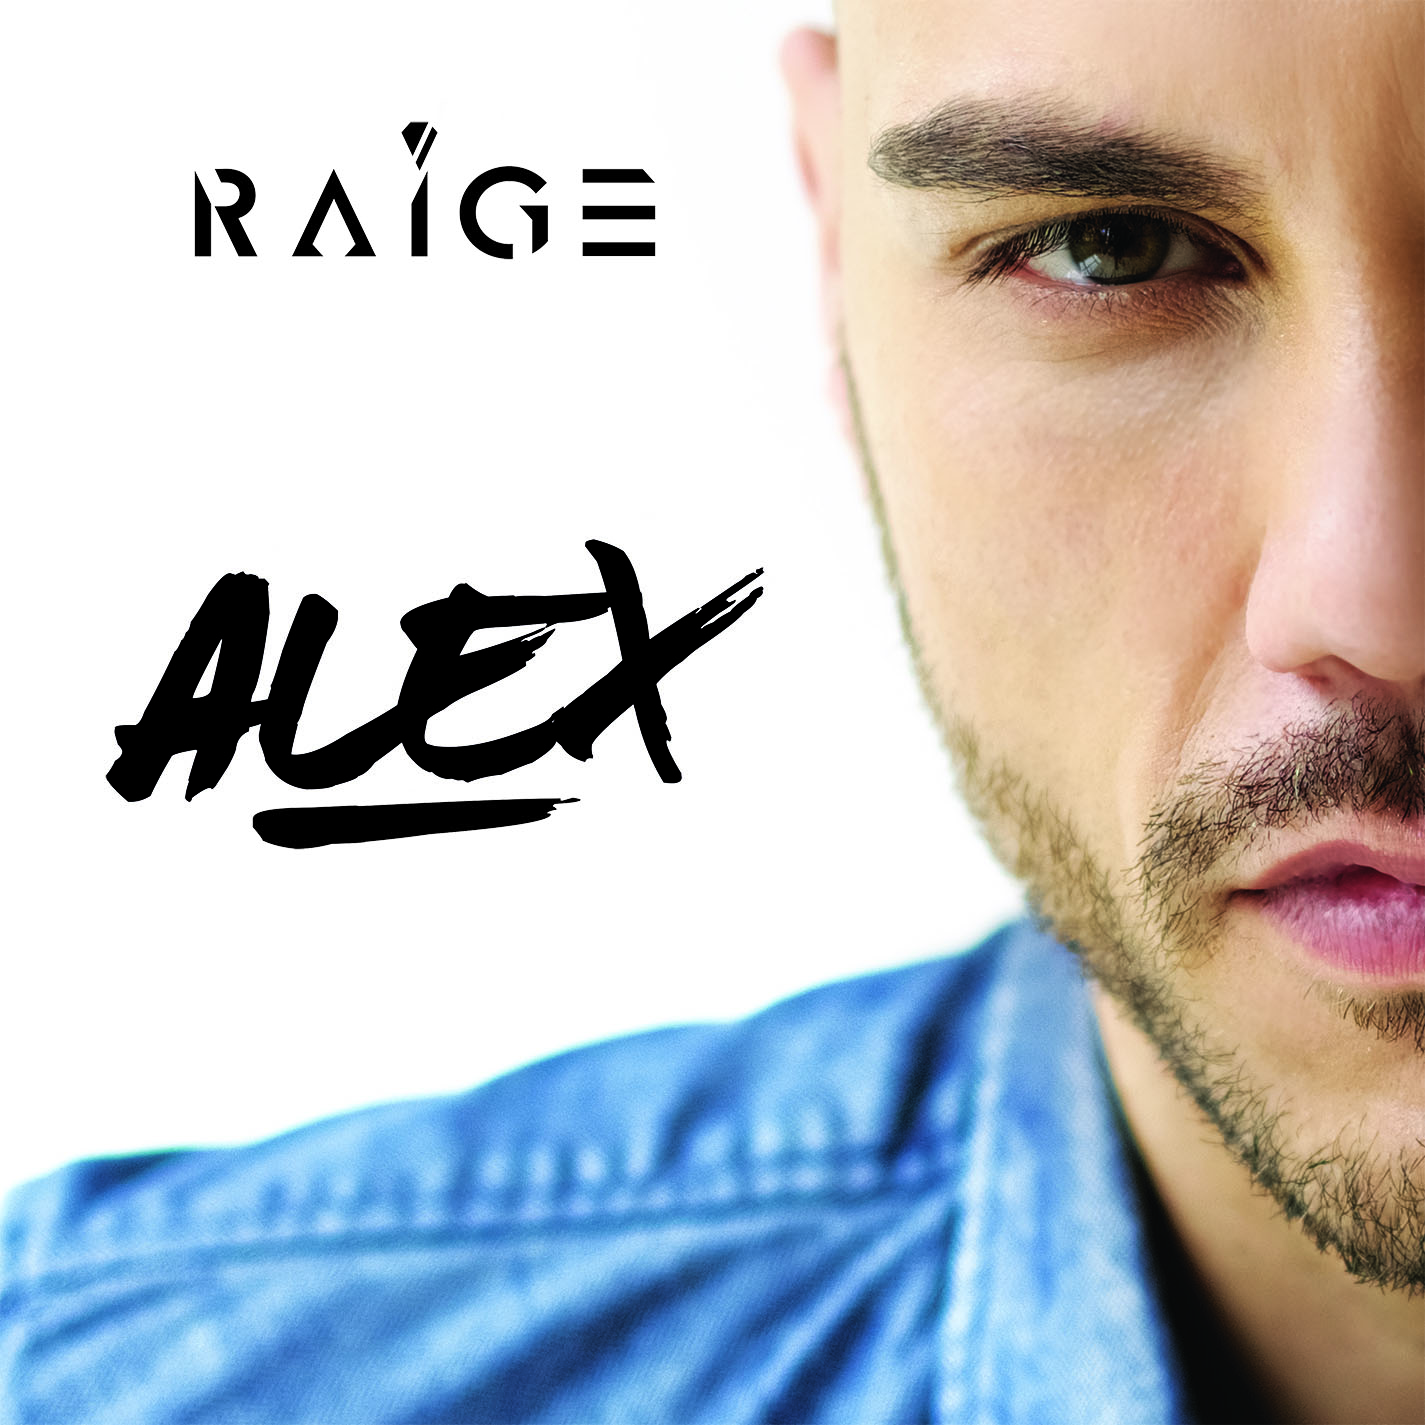 Cover album Raige_Alex (1)